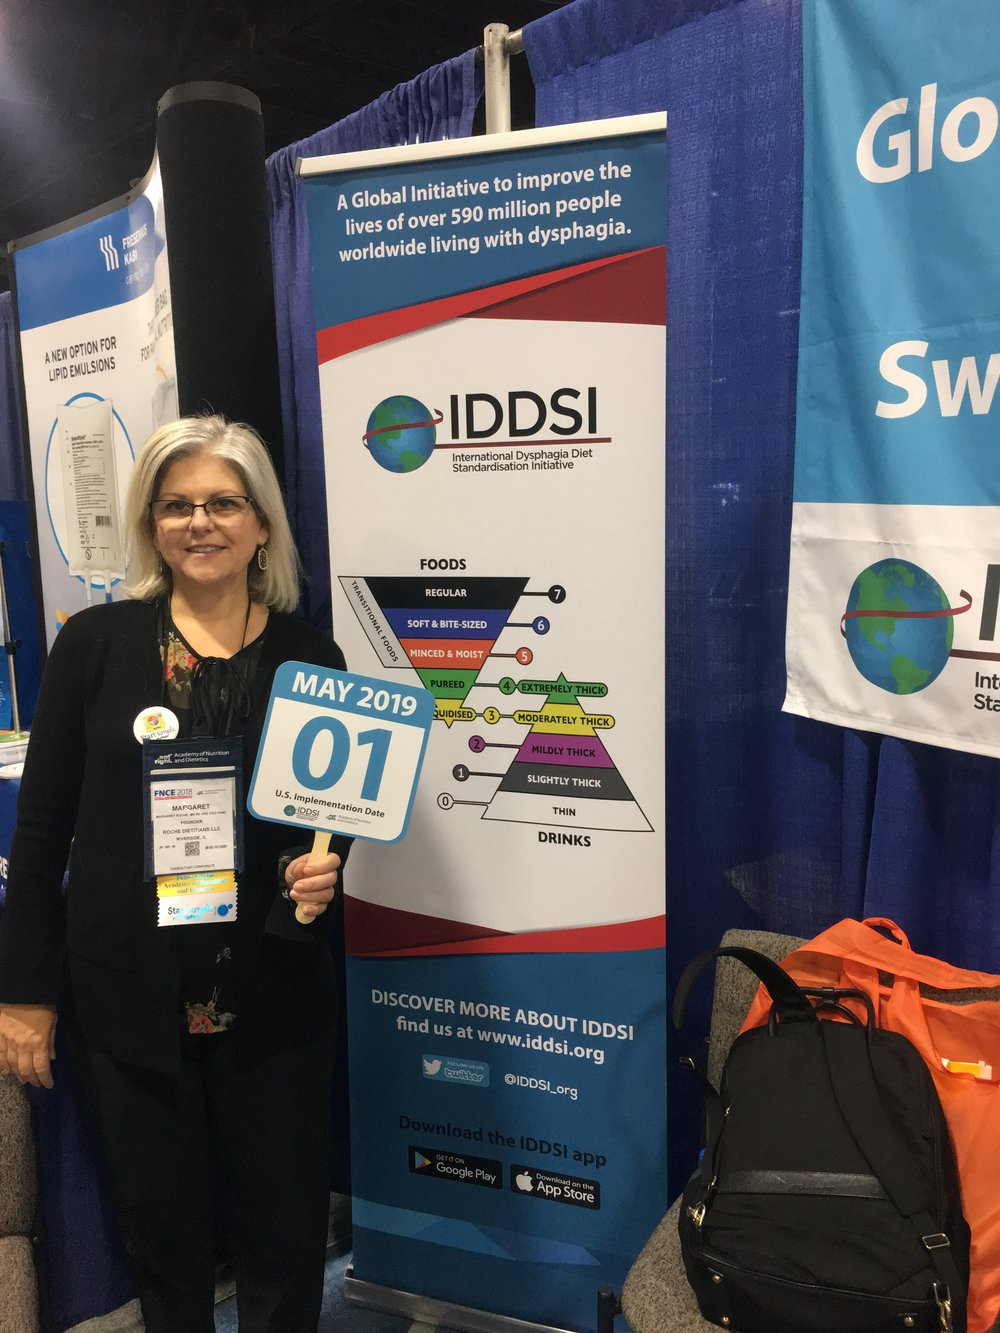 Need Help Implementing IDDSI?